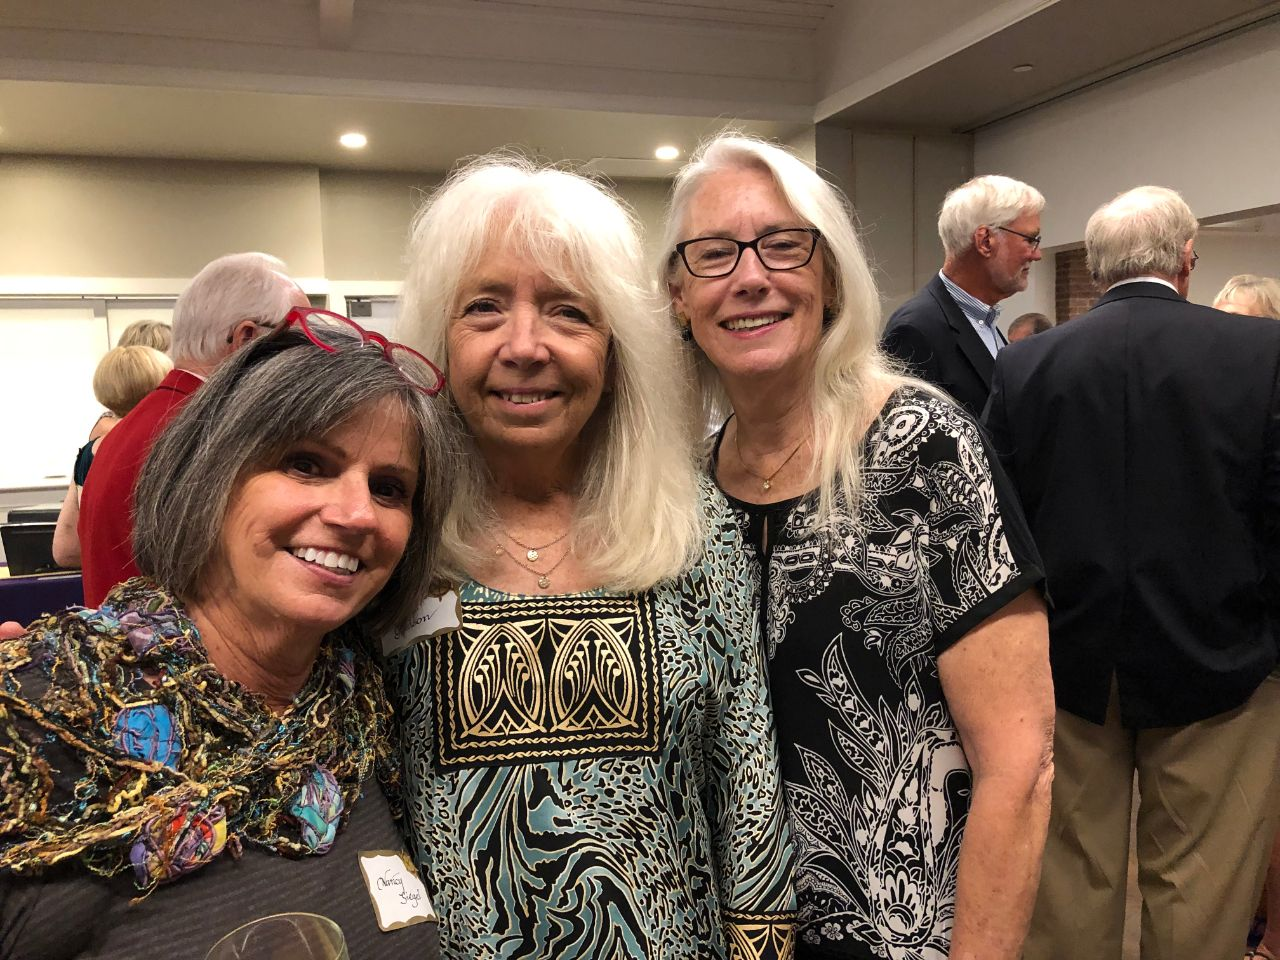 Nancy Siegel, Deb Gleason, Jan Symroski